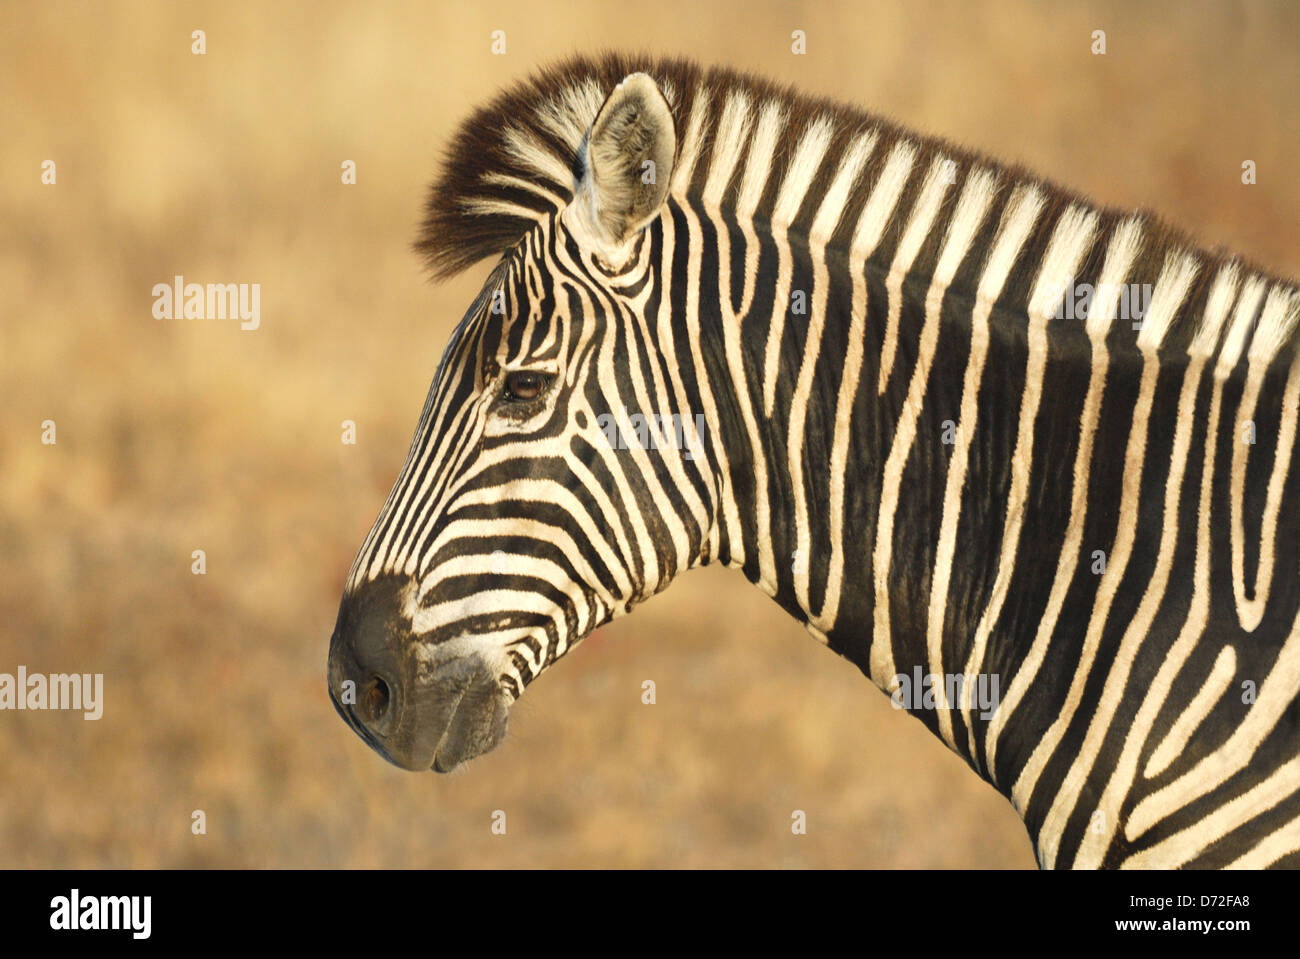 Male Burchell's Zebra (Equus burchellii) in Kruger National Park, South Africa - Stock Image